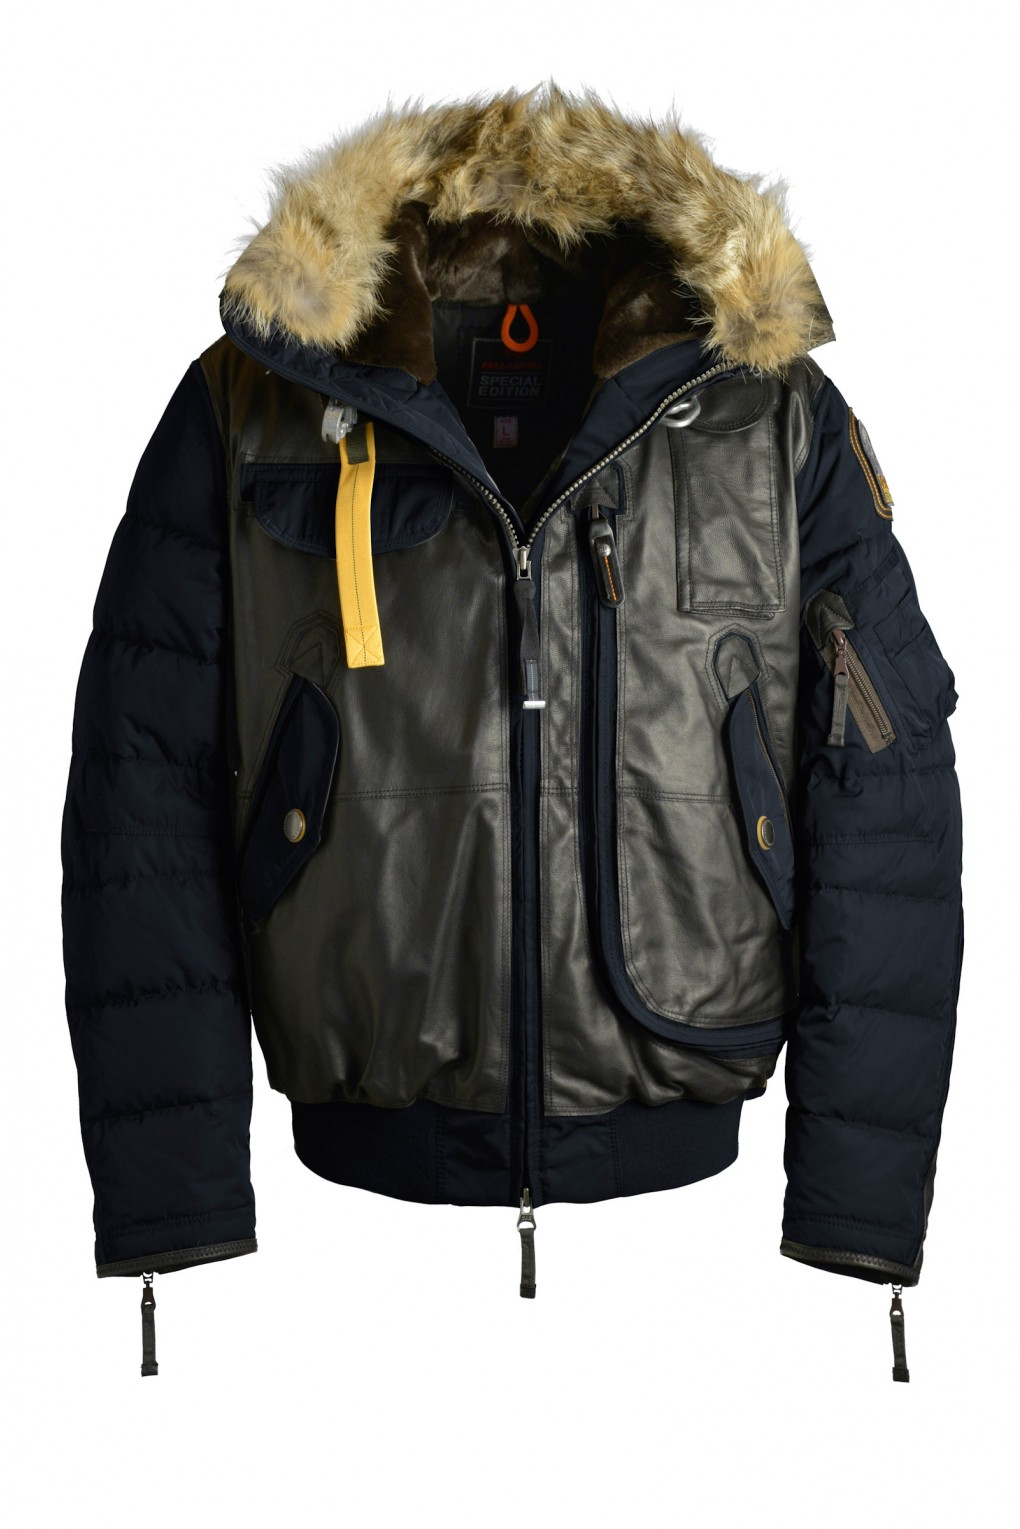 parajumpers GRIZZLY man outerwear Blue Black